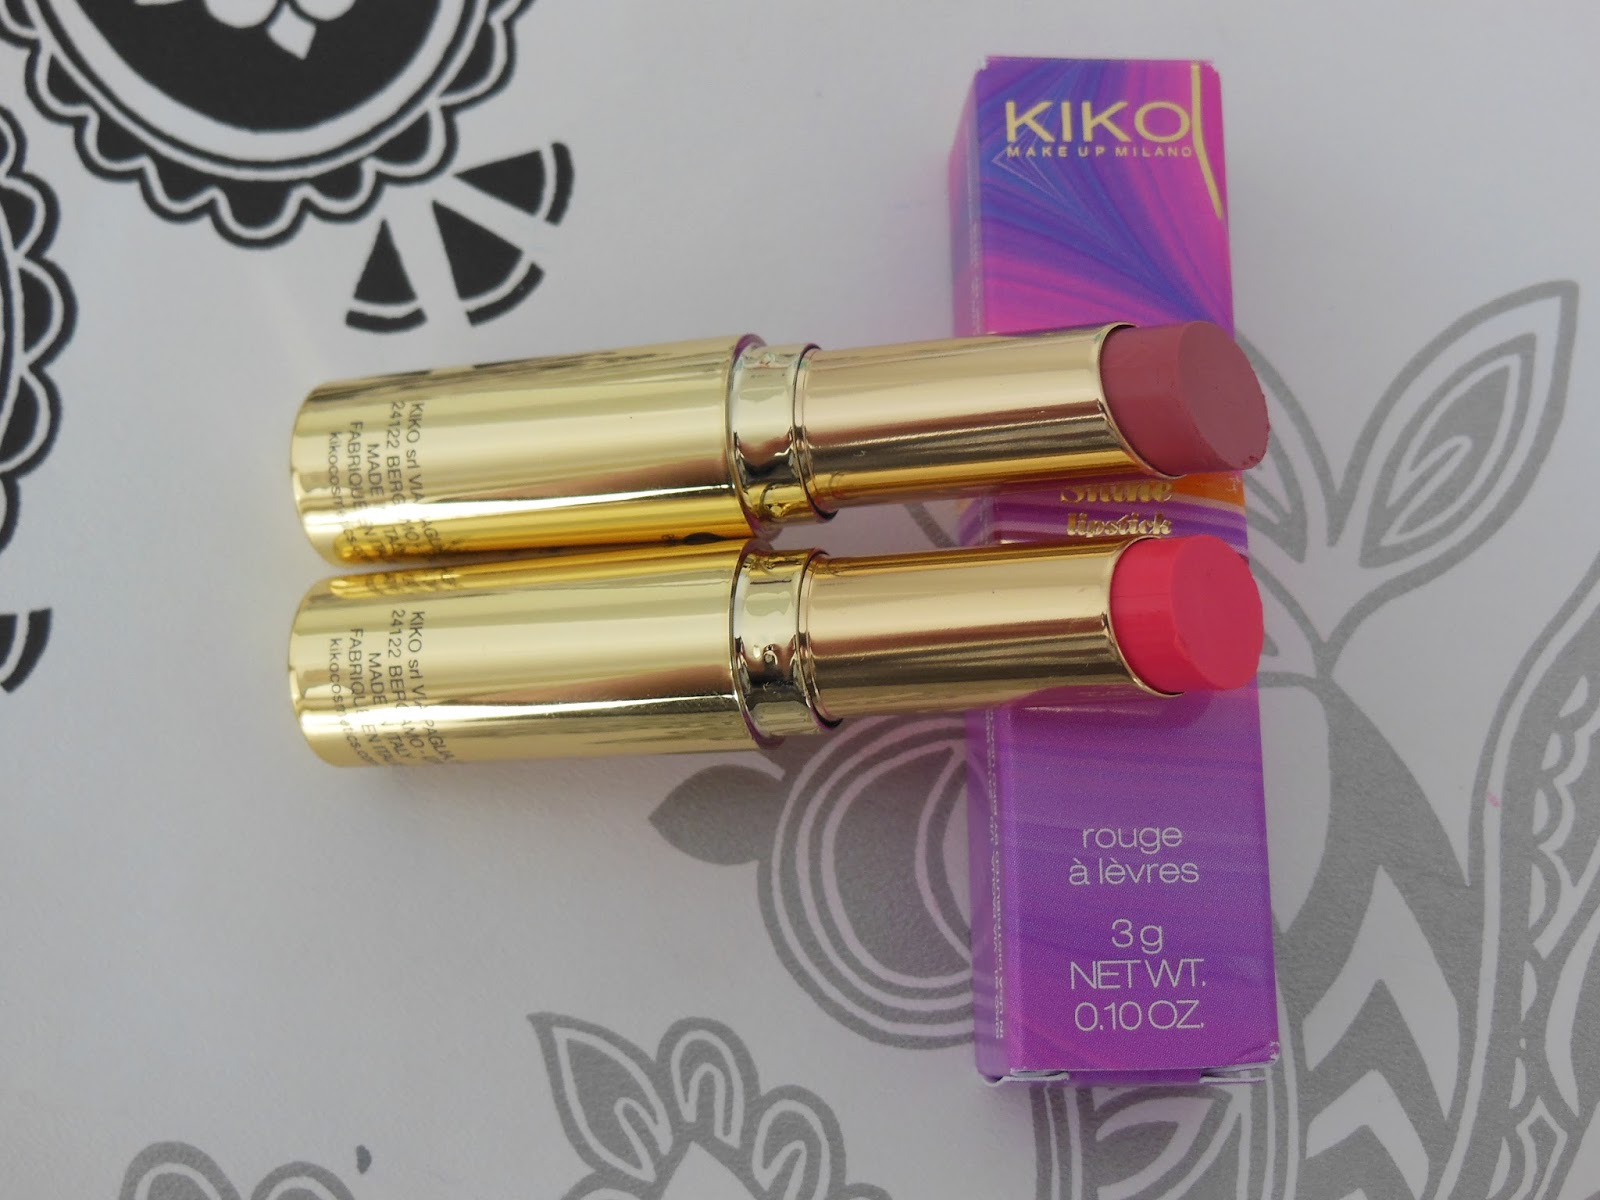 Kiko life in rio collection creamy touch lipsticks